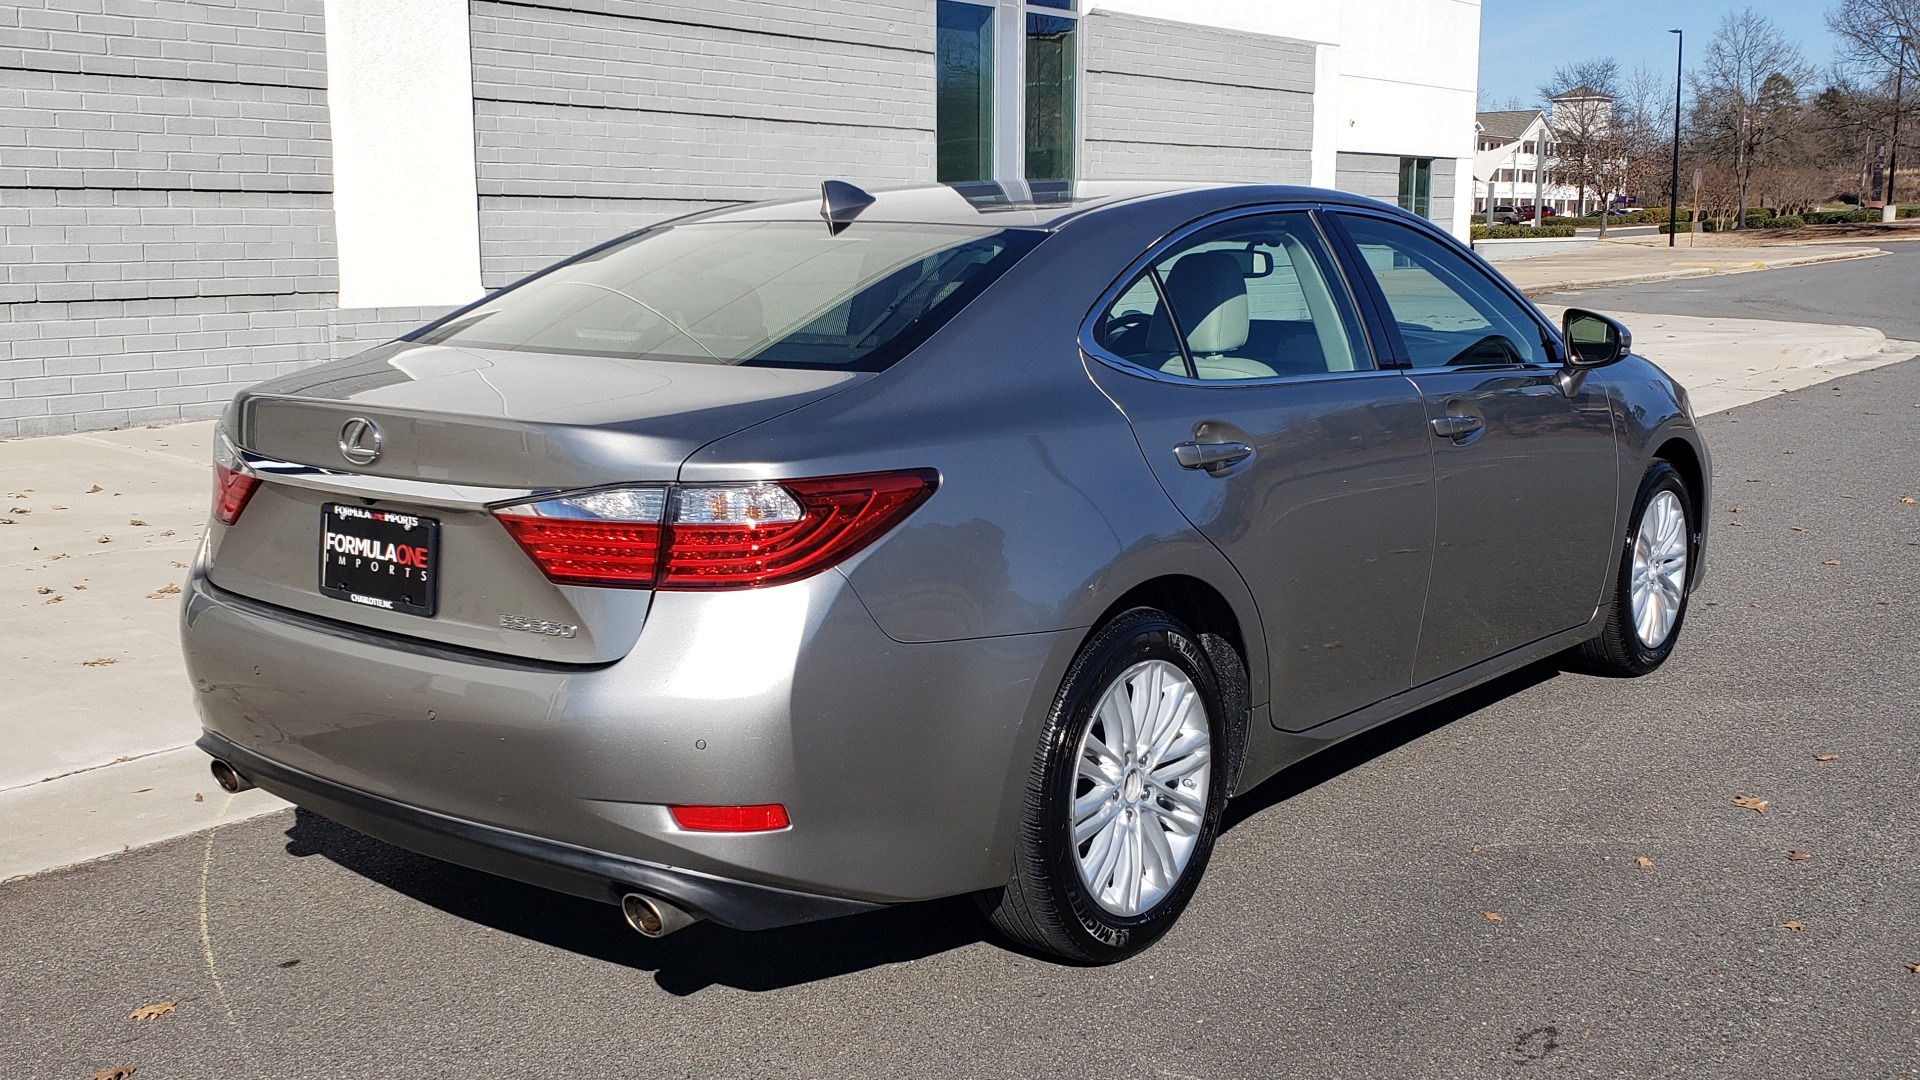 Used 2015 Lexus ES 350 LUXURY PKG / NAV / BSM / LCA / PARK ASSIST / REARVIEW for sale Sold at Formula Imports in Charlotte NC 28227 6